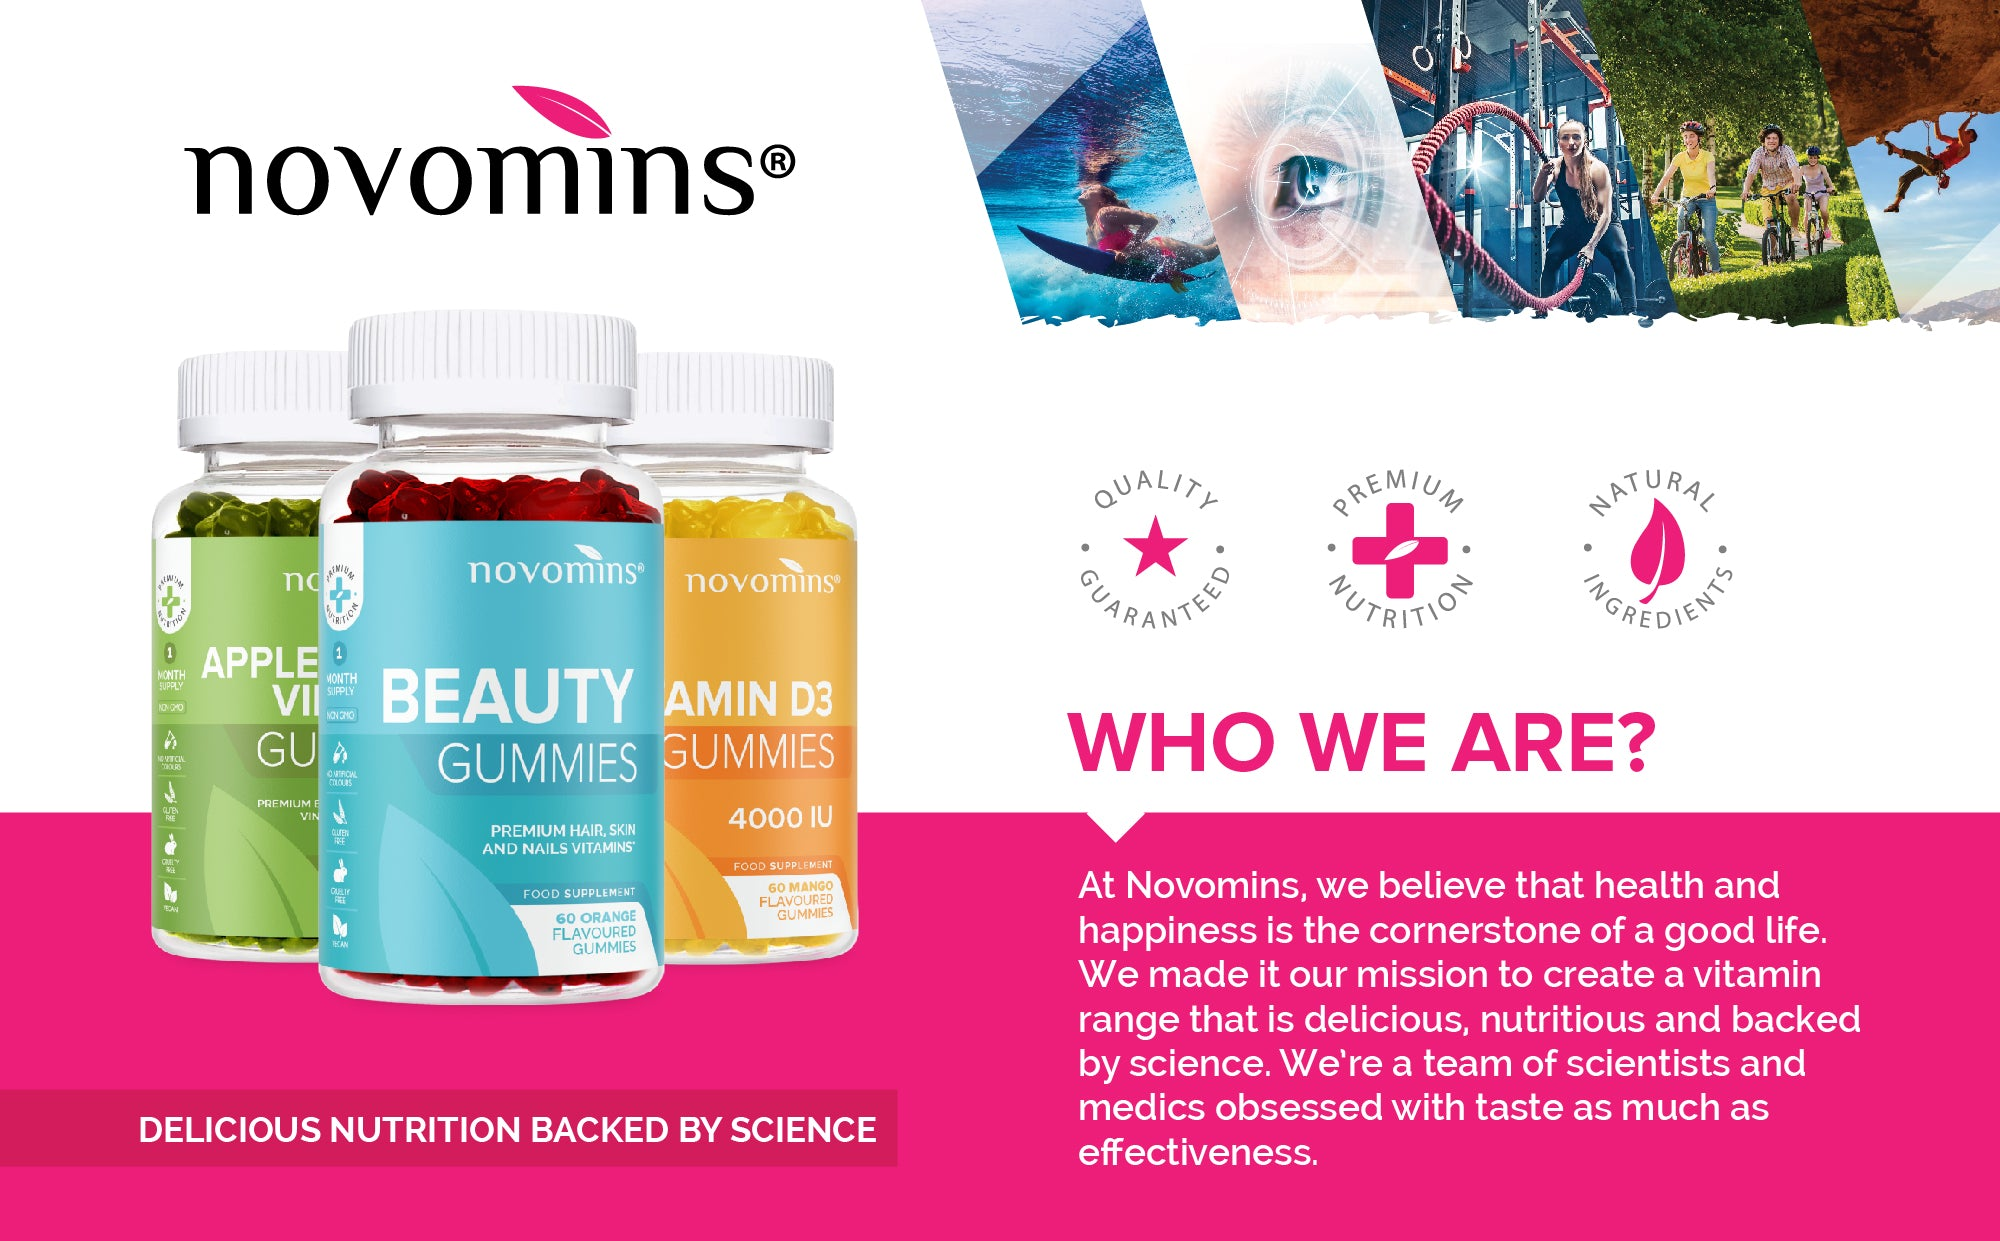 """<p><span style=""""color: #ff00ab;""""><strong>Who are we?</strong></span></p> <p>At Novomins, we believe that health and happiness is the cornerstone of a good life. We made it our mission to create a vitamin range that is delicious, nutritious and backed by science. We're a team of scientists and medics obsessed with taste as much as effectiveness.</p> <p><span style=""""color: #ff00ab;""""><strong><em>Delicious Nutrition Backed by Science</em></strong></span></p>"""